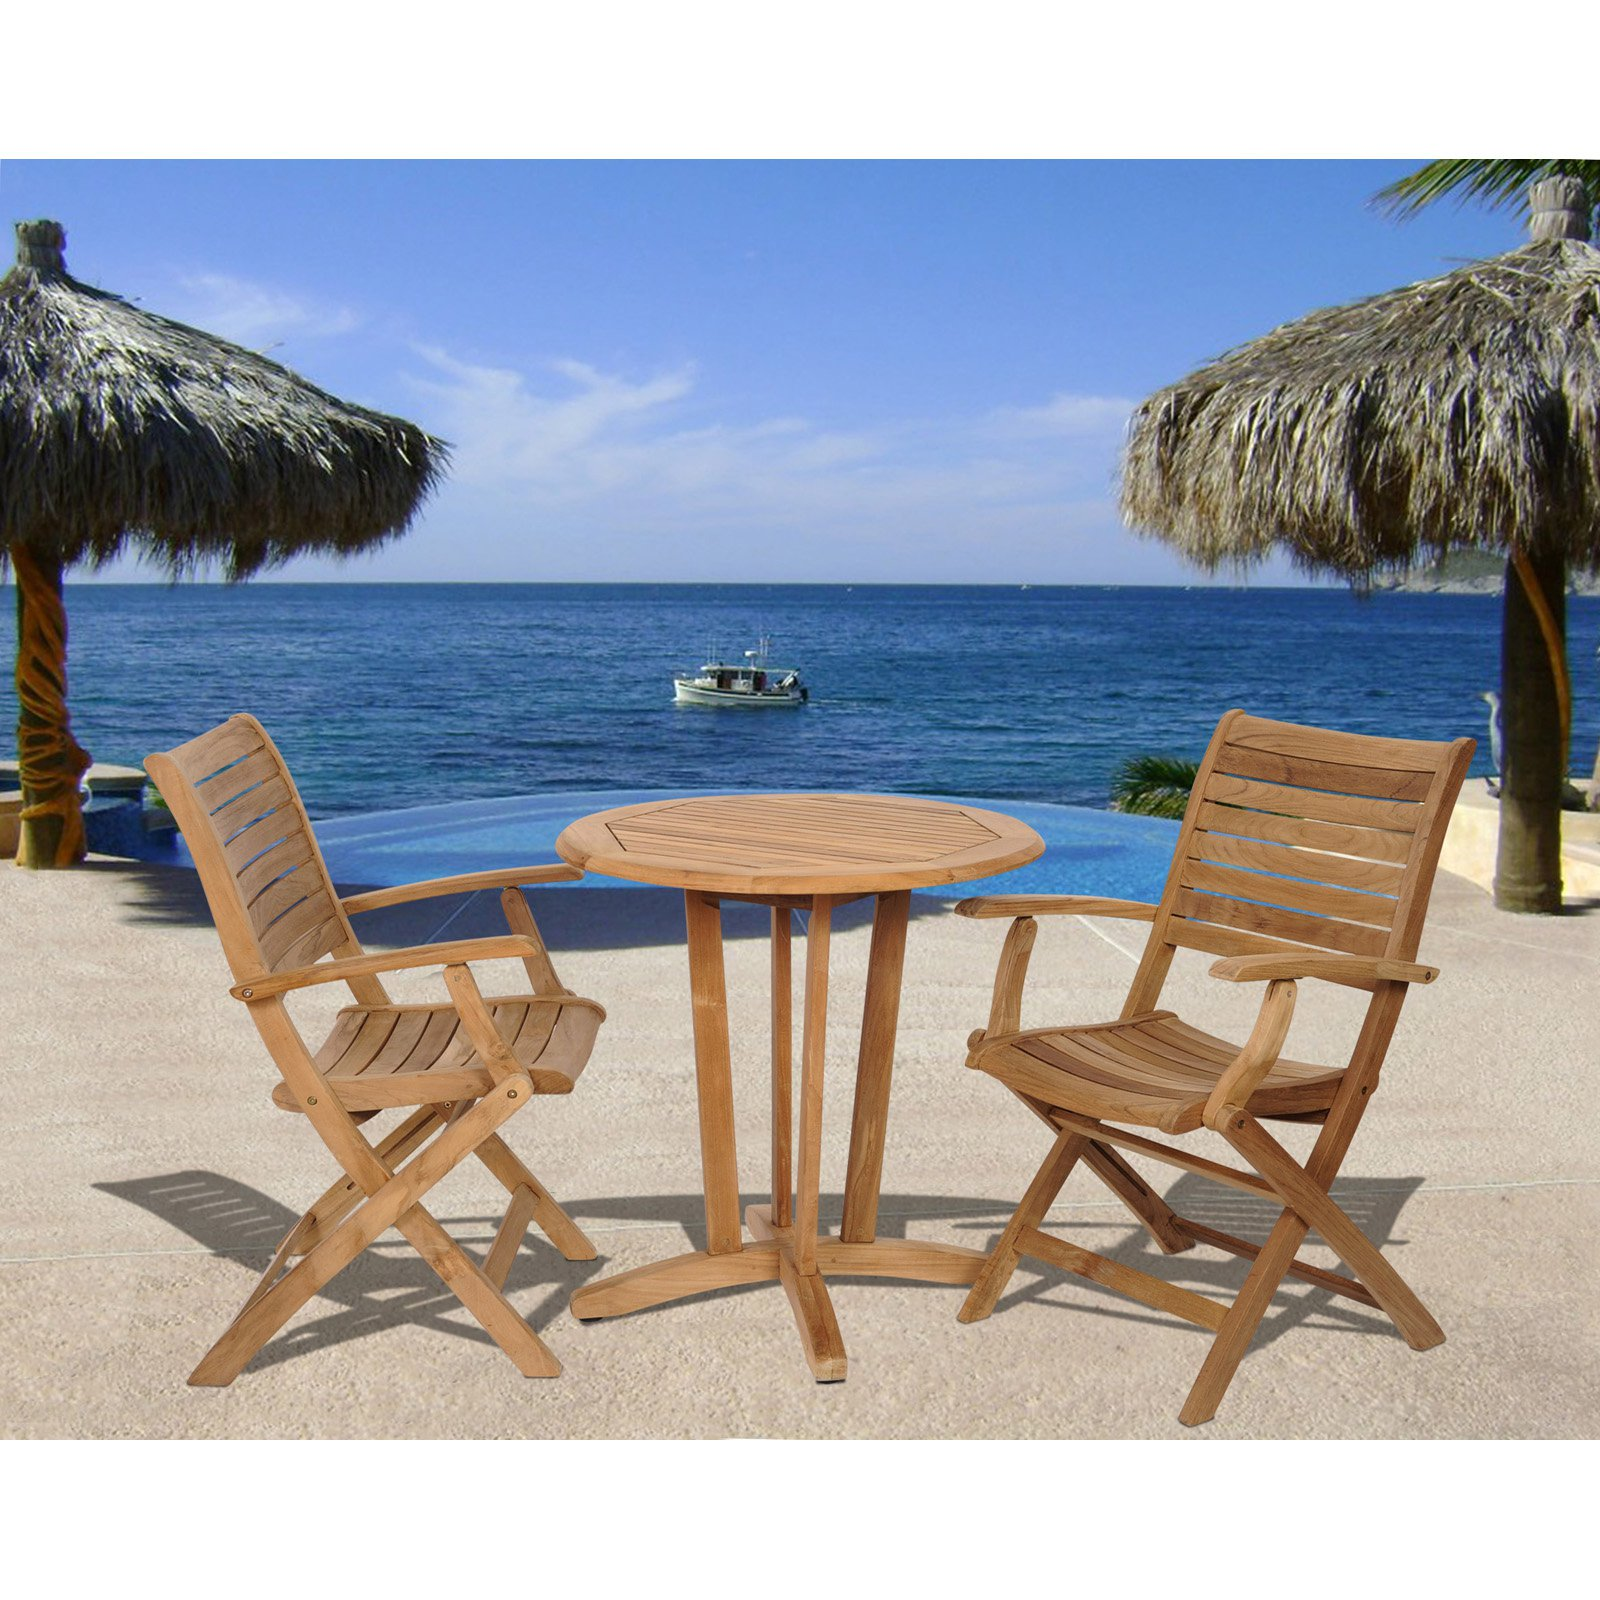 Amazonia Olympia 3 Piece Teak Round Patio Dining Set